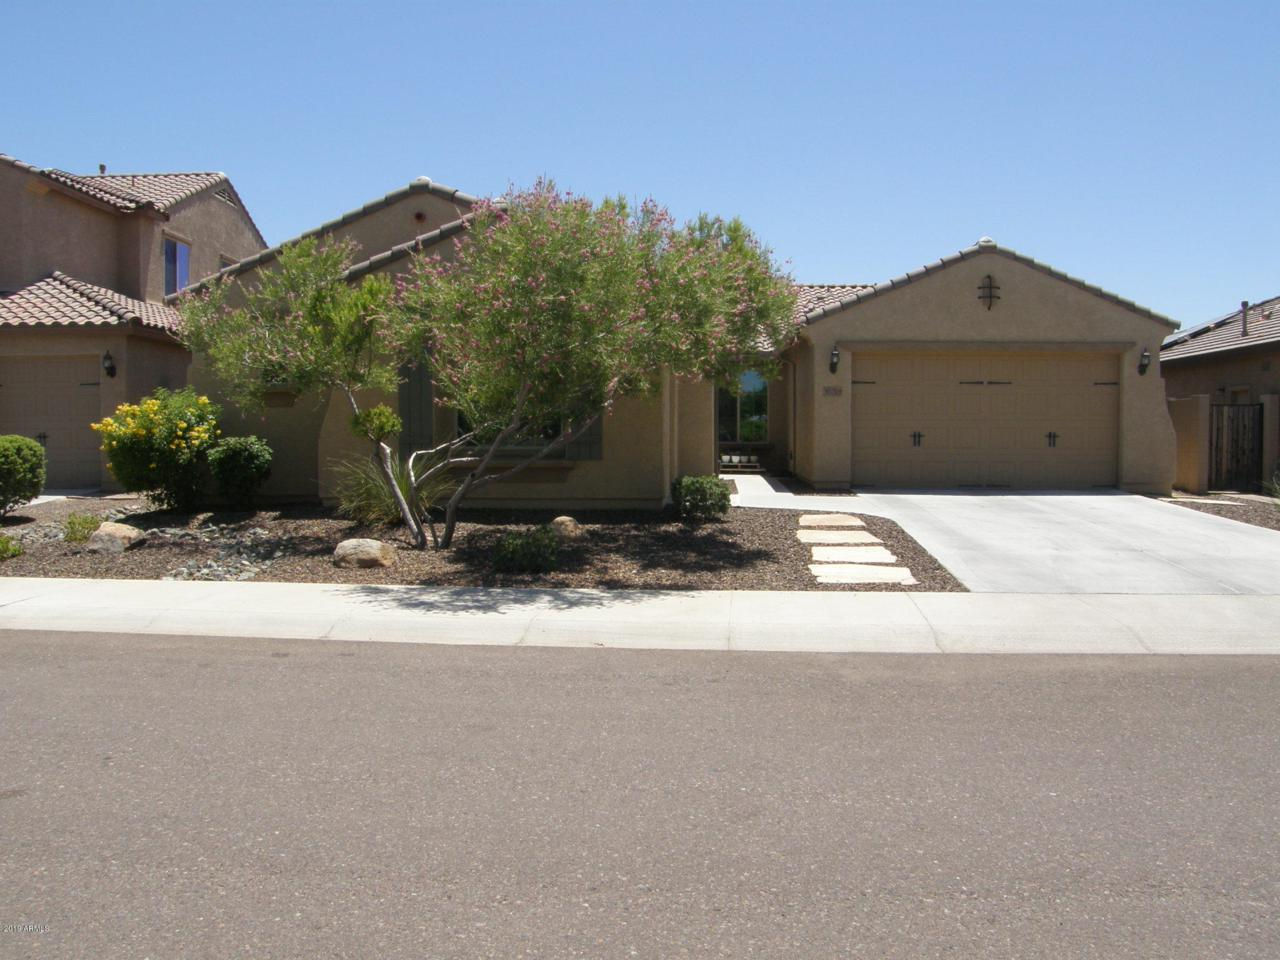 10793 Whitehorn Way - Photo 1